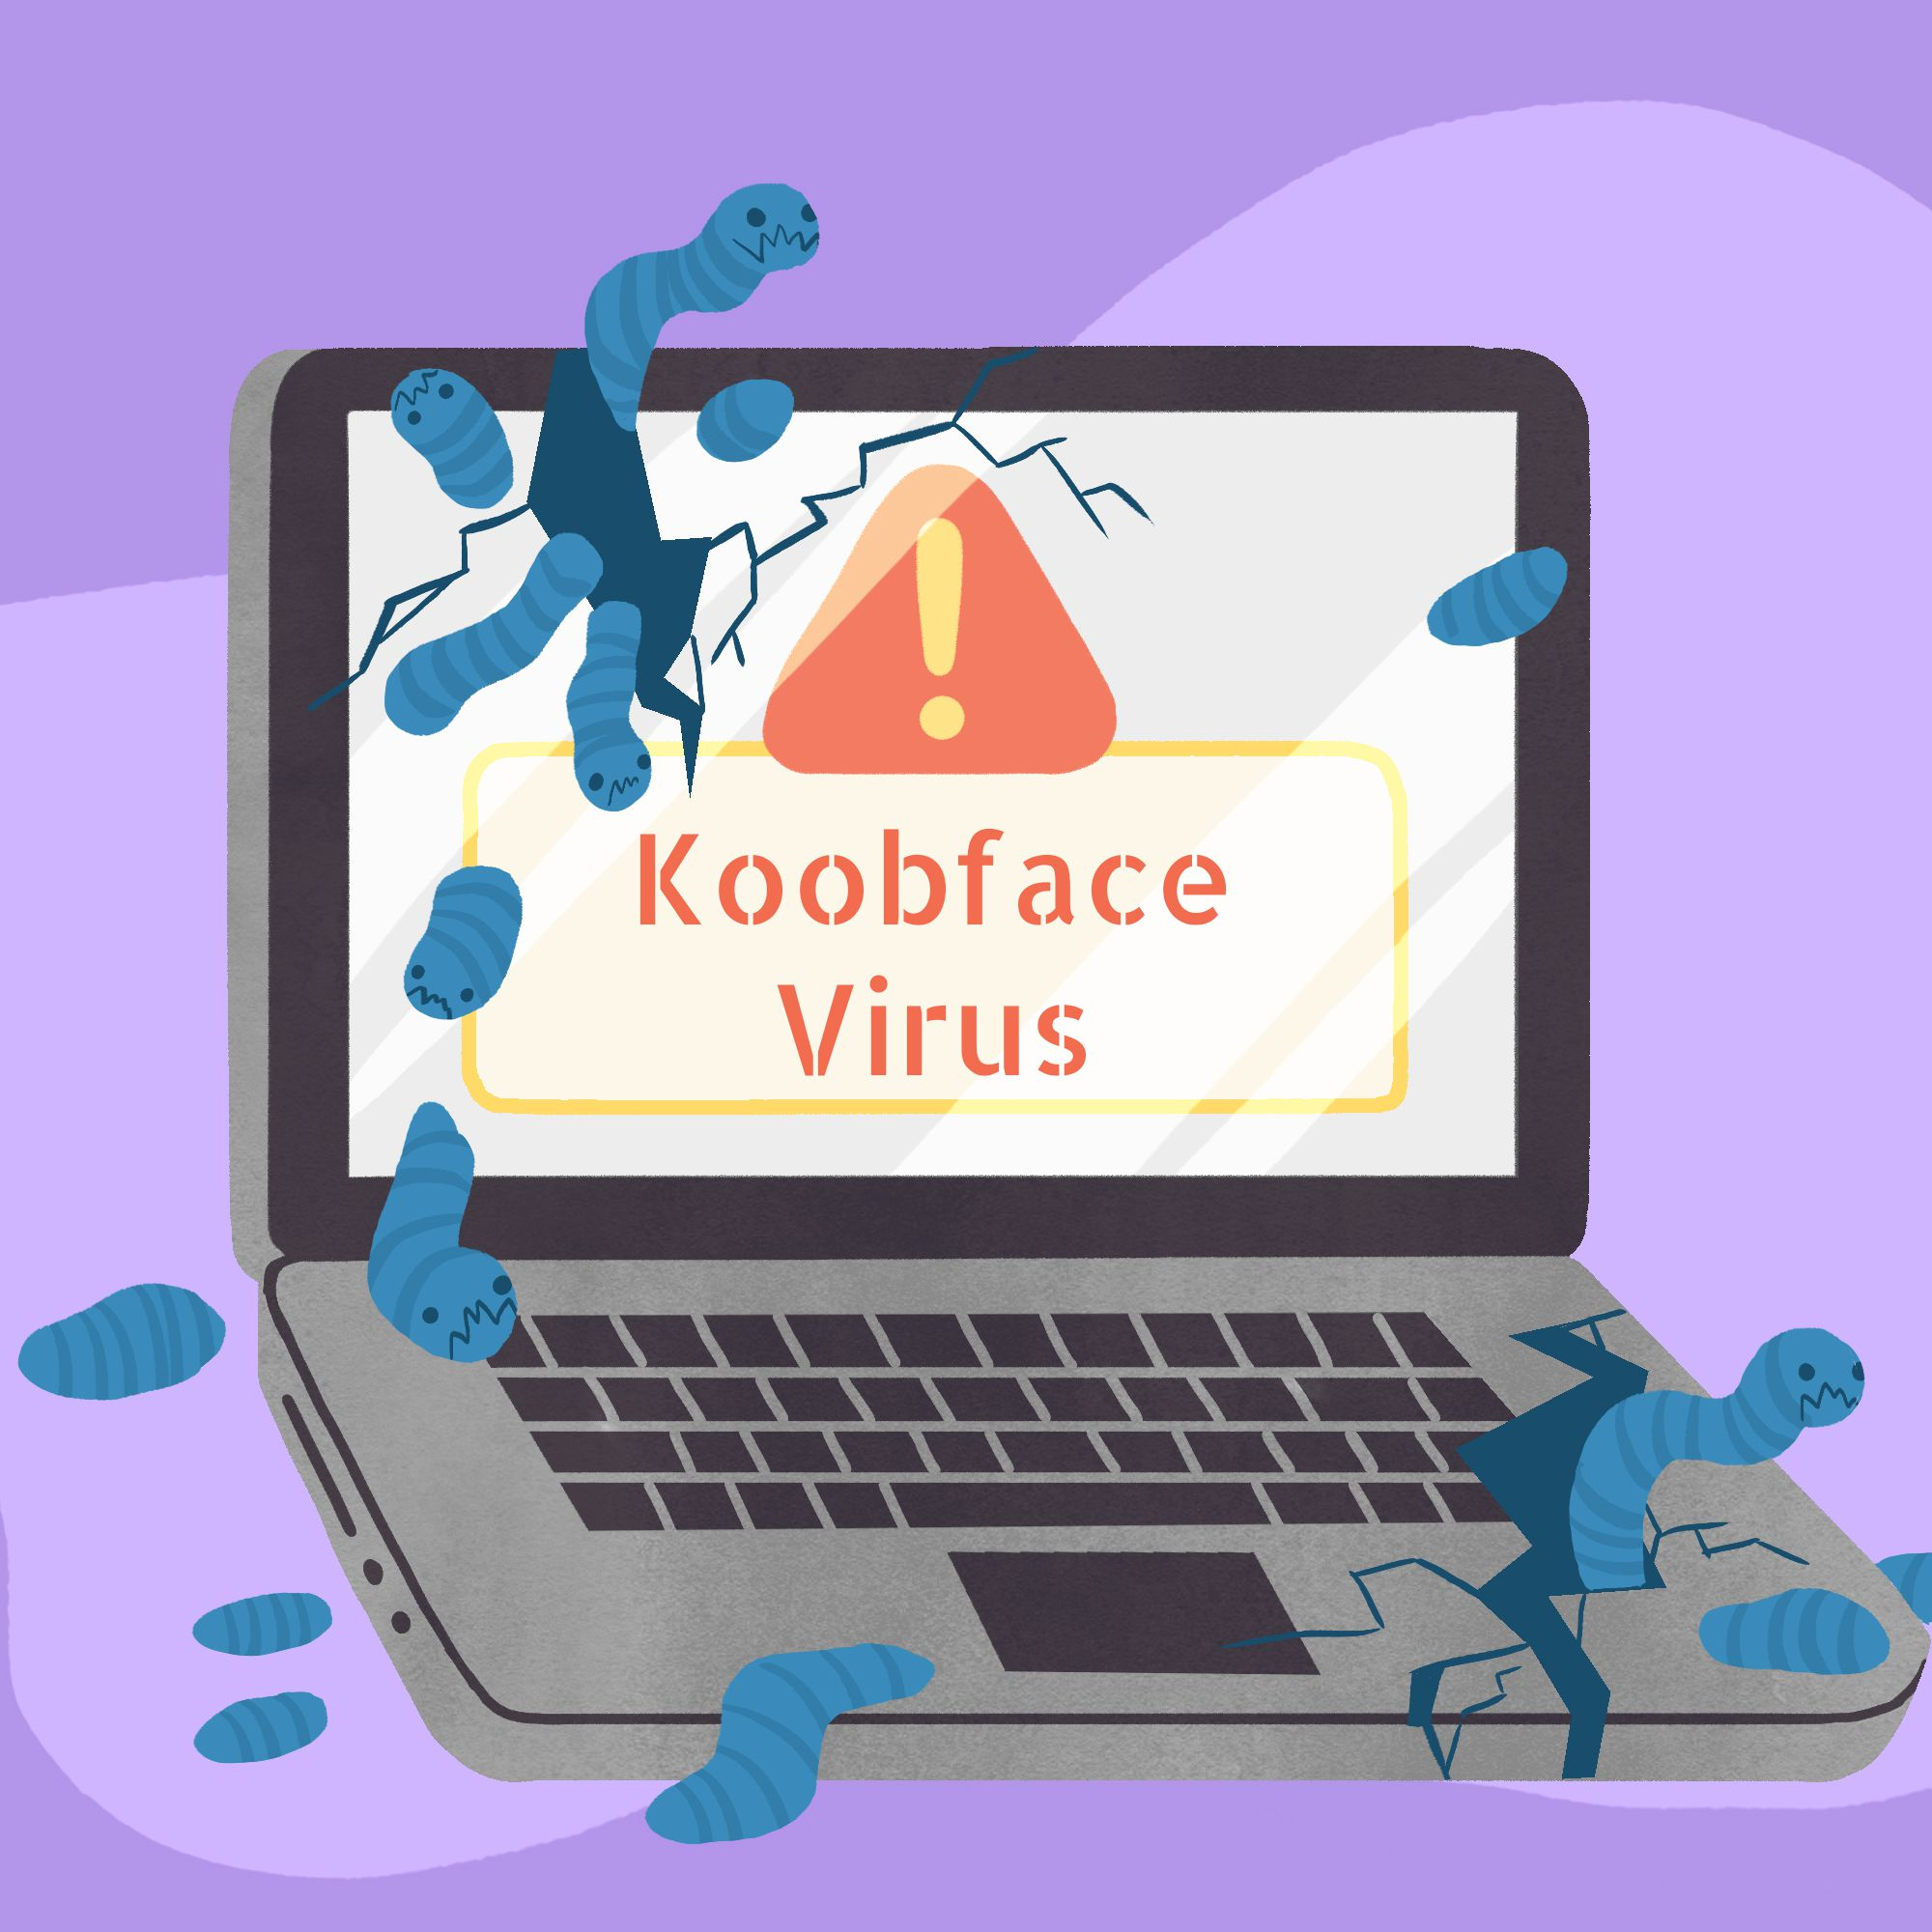 The Koobface Virus: What It Is and How to Remove It